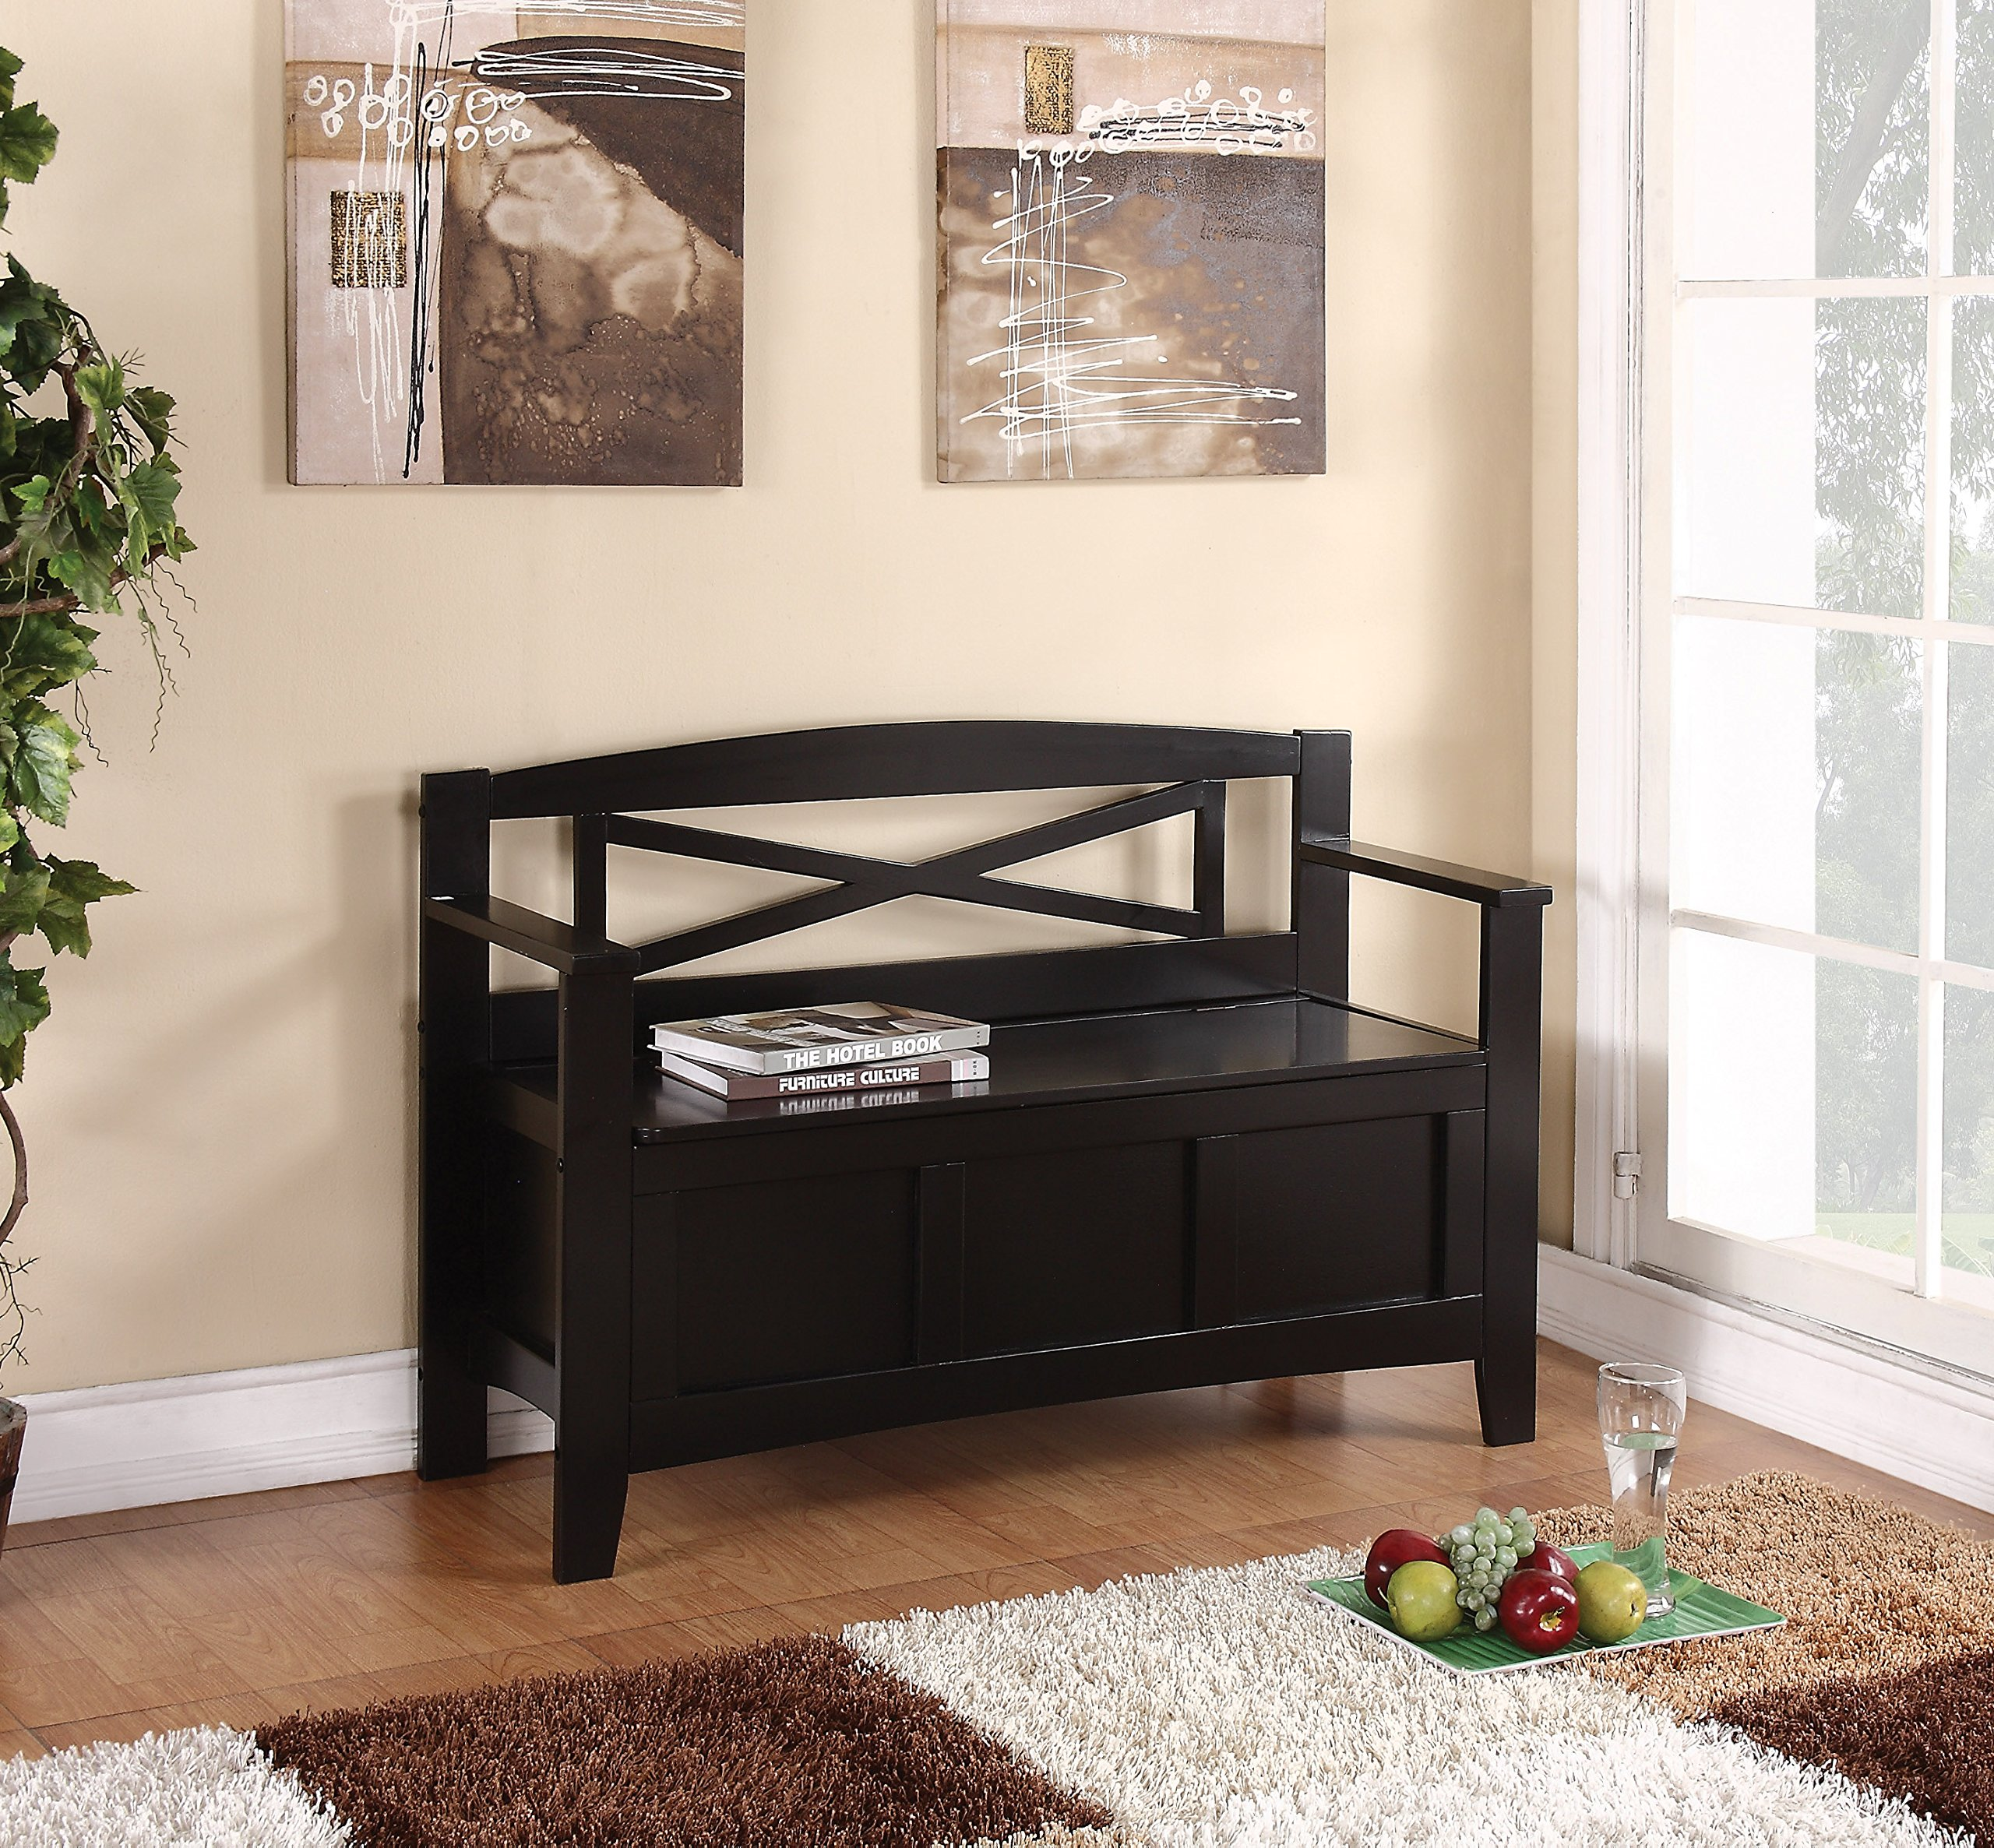 Office Star Metro X-Back Style Wood Entry Way Bench with Storage, Black finish